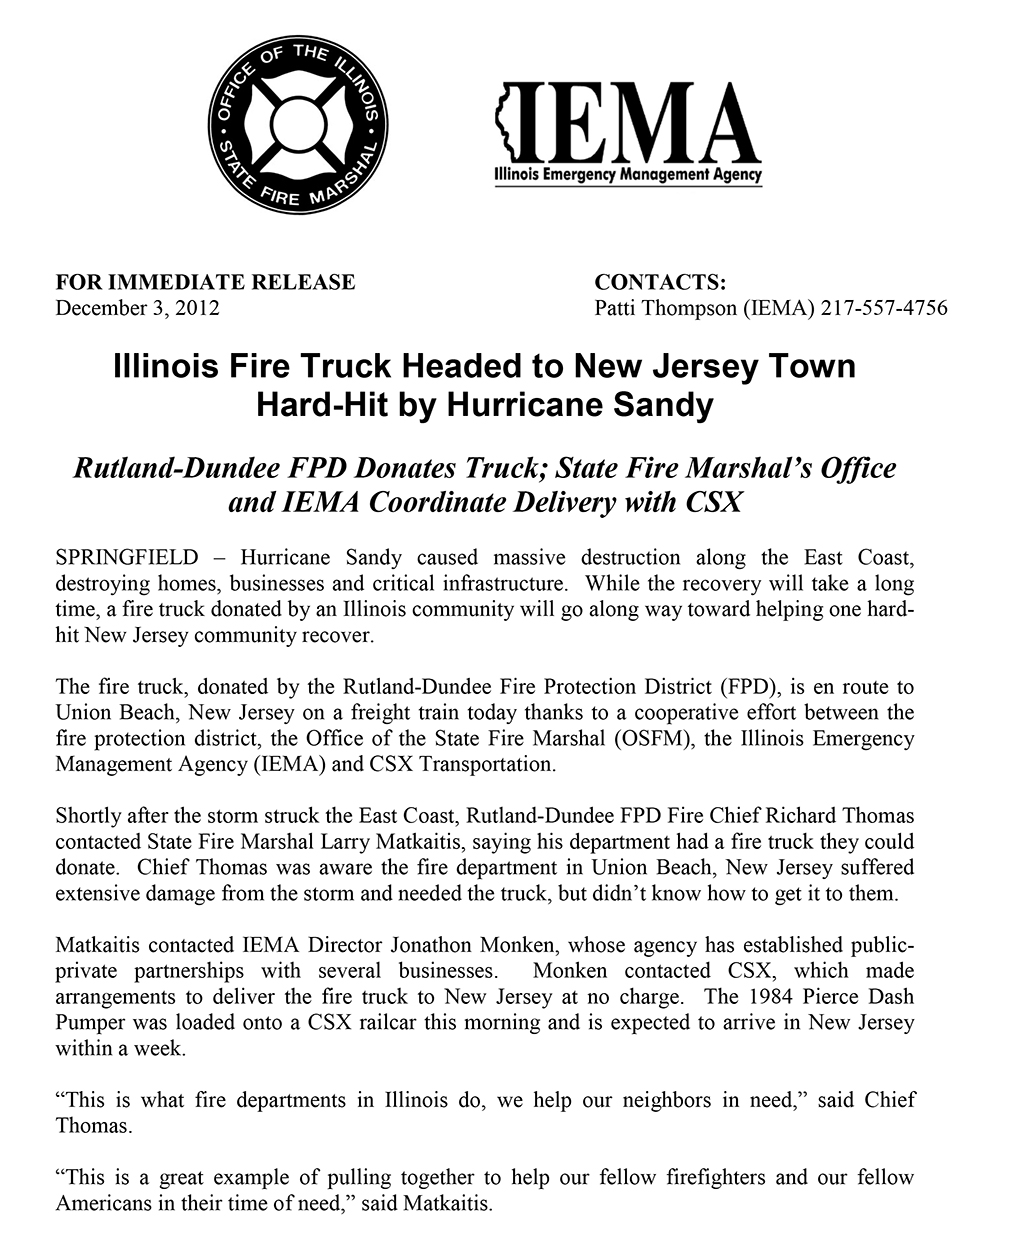 Rutland-Dundee FPD donates fire engine to New Jersey town